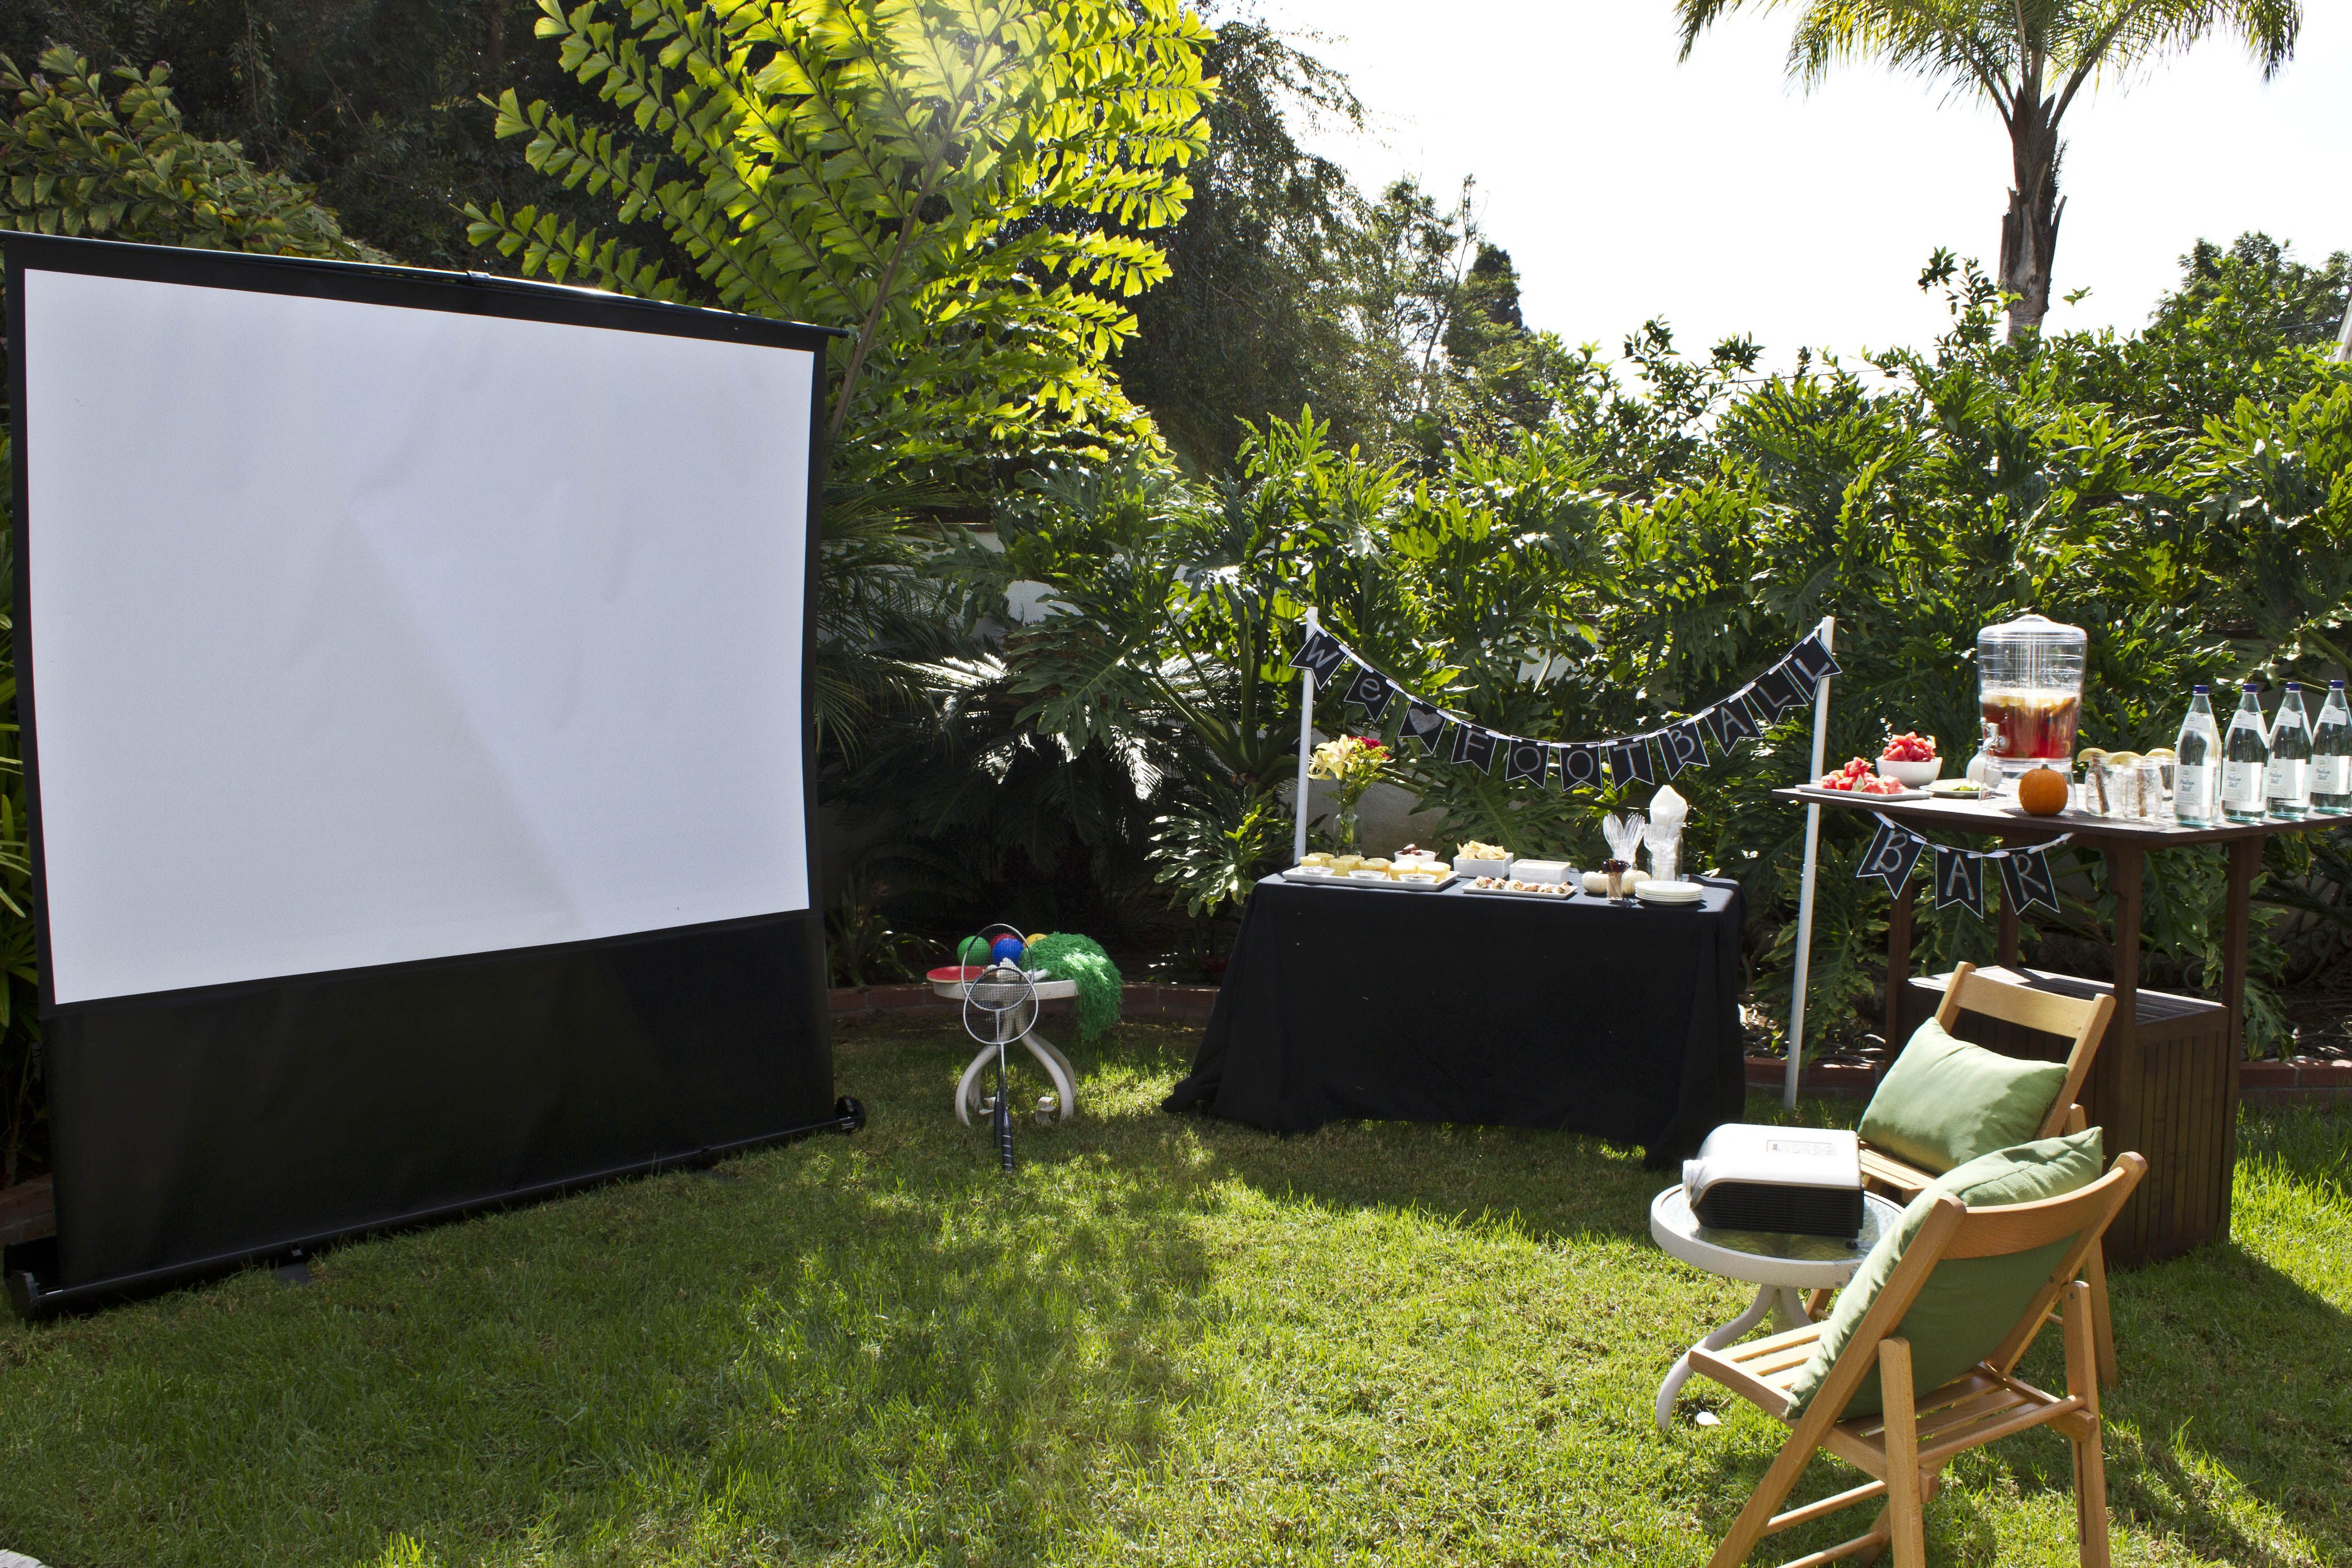 backyard football tailgating party with a projector and big screen to